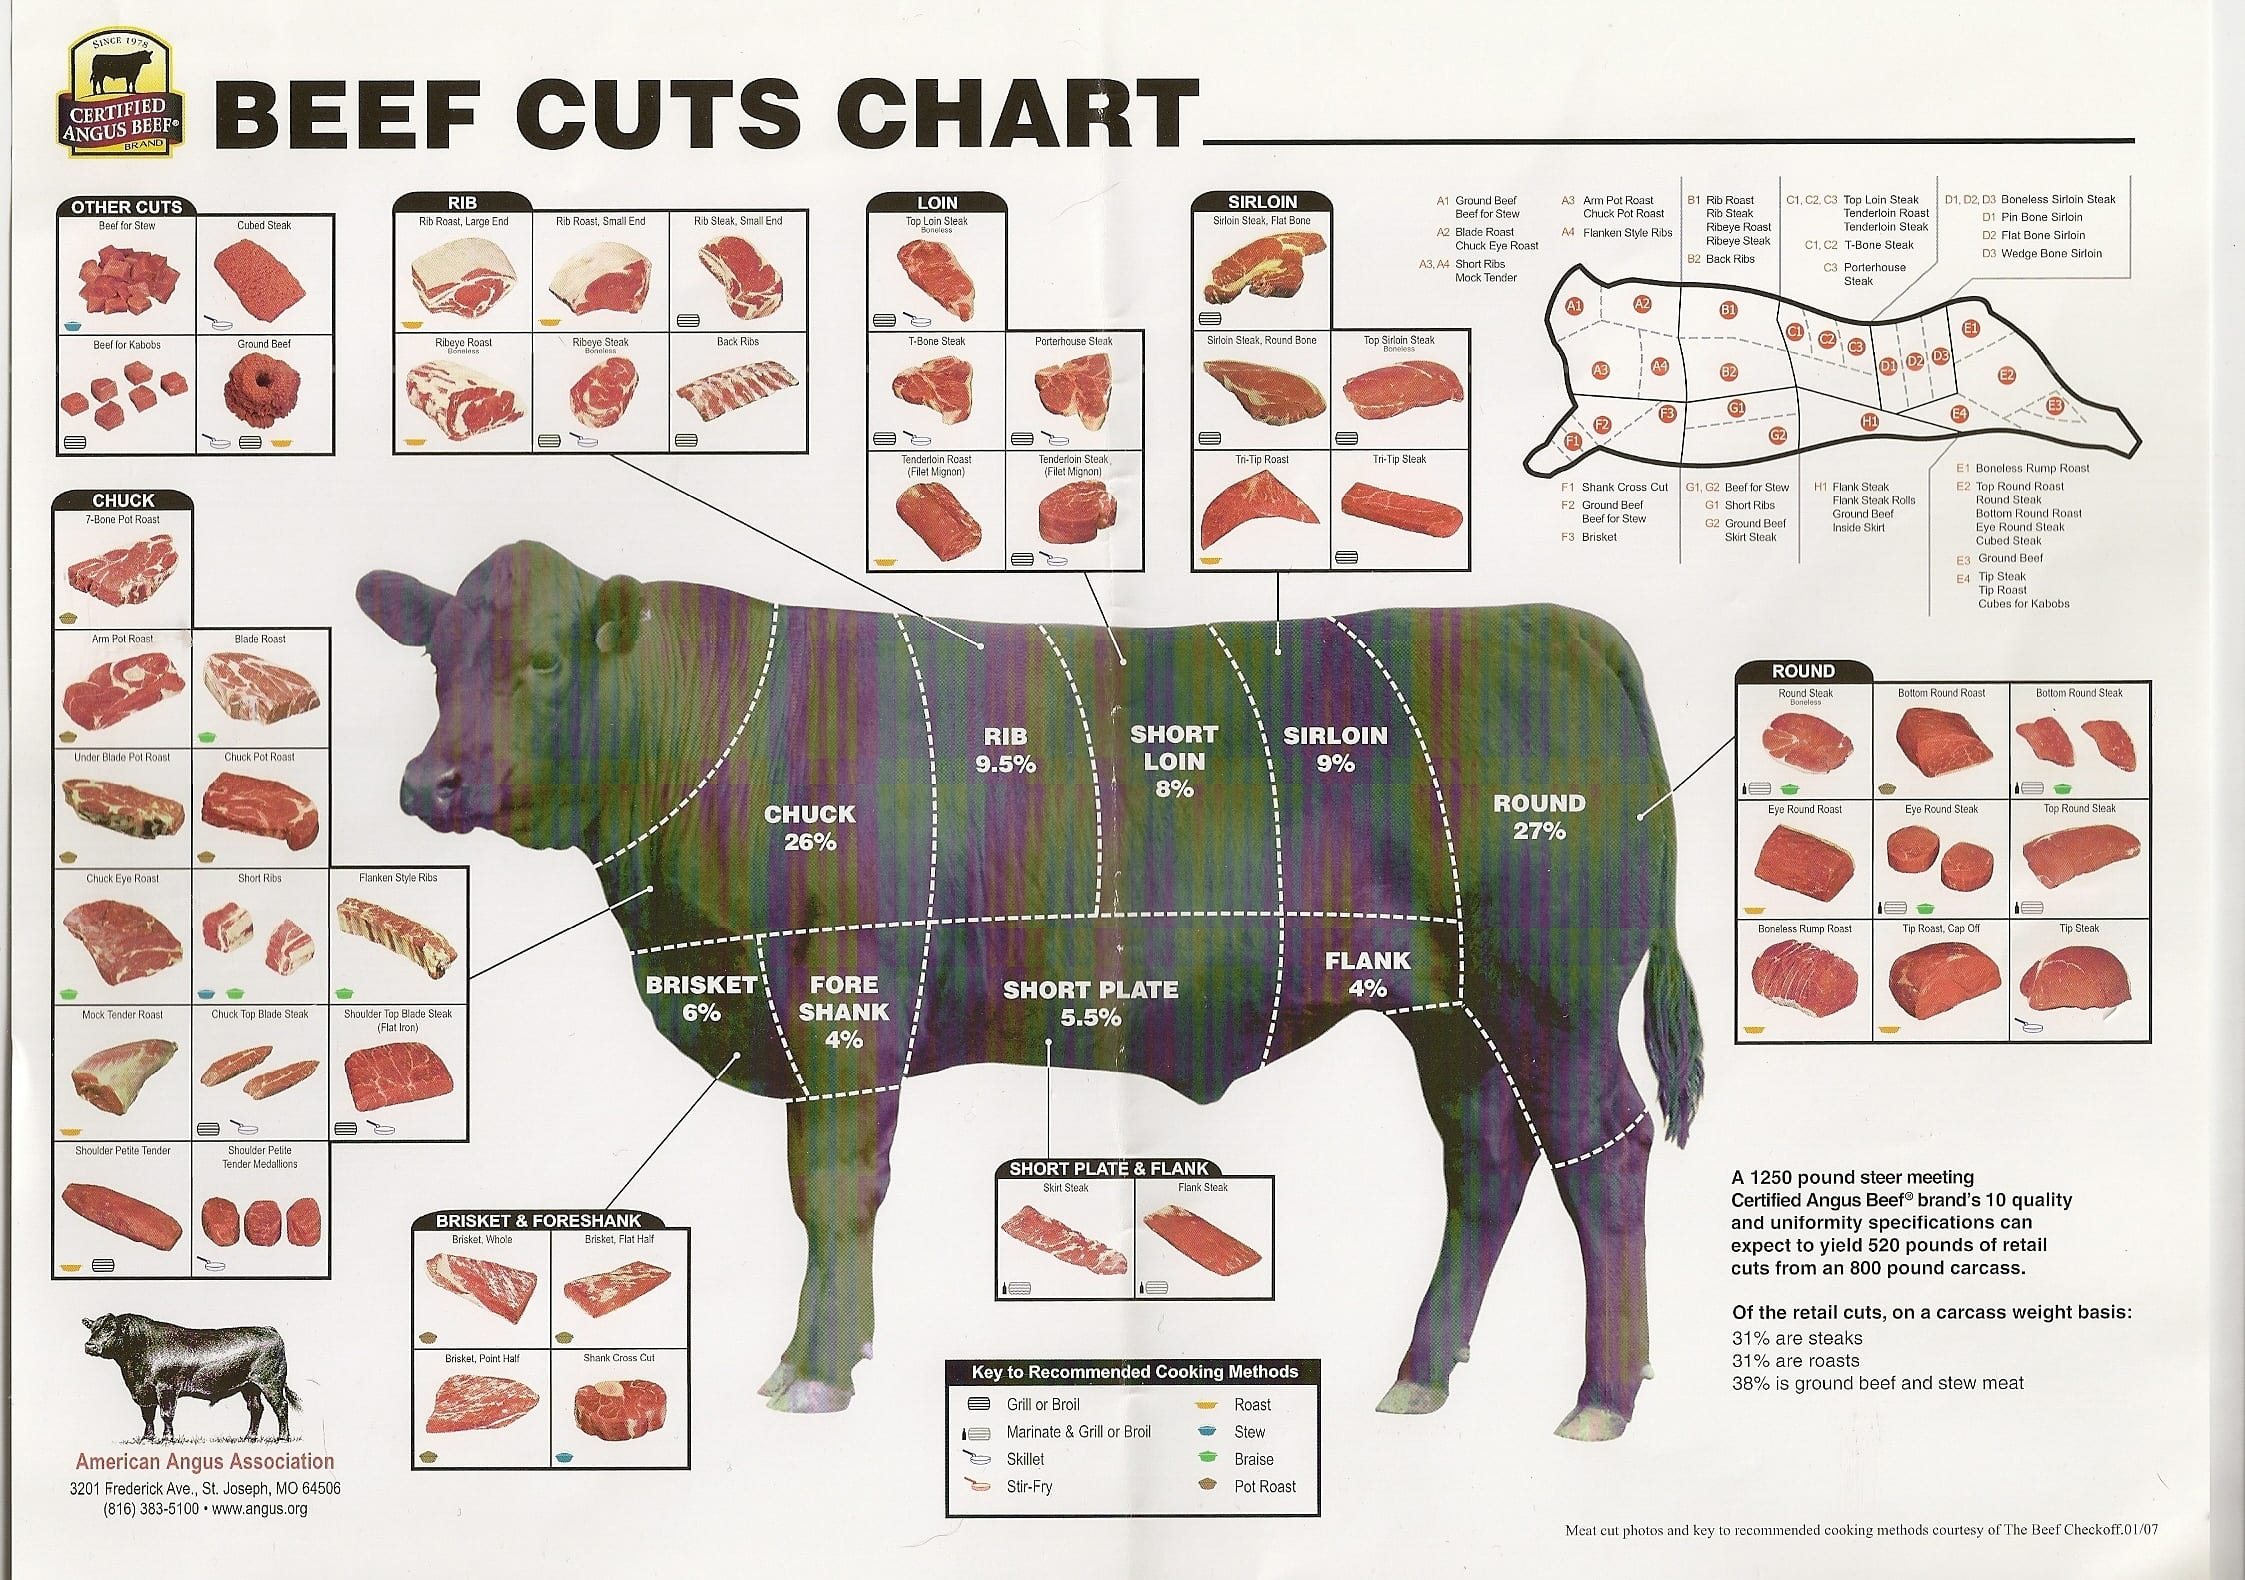 beef cuts charts where does a cut come from  where and what in the world Colorado Travel Guide Books Colorado Tourism